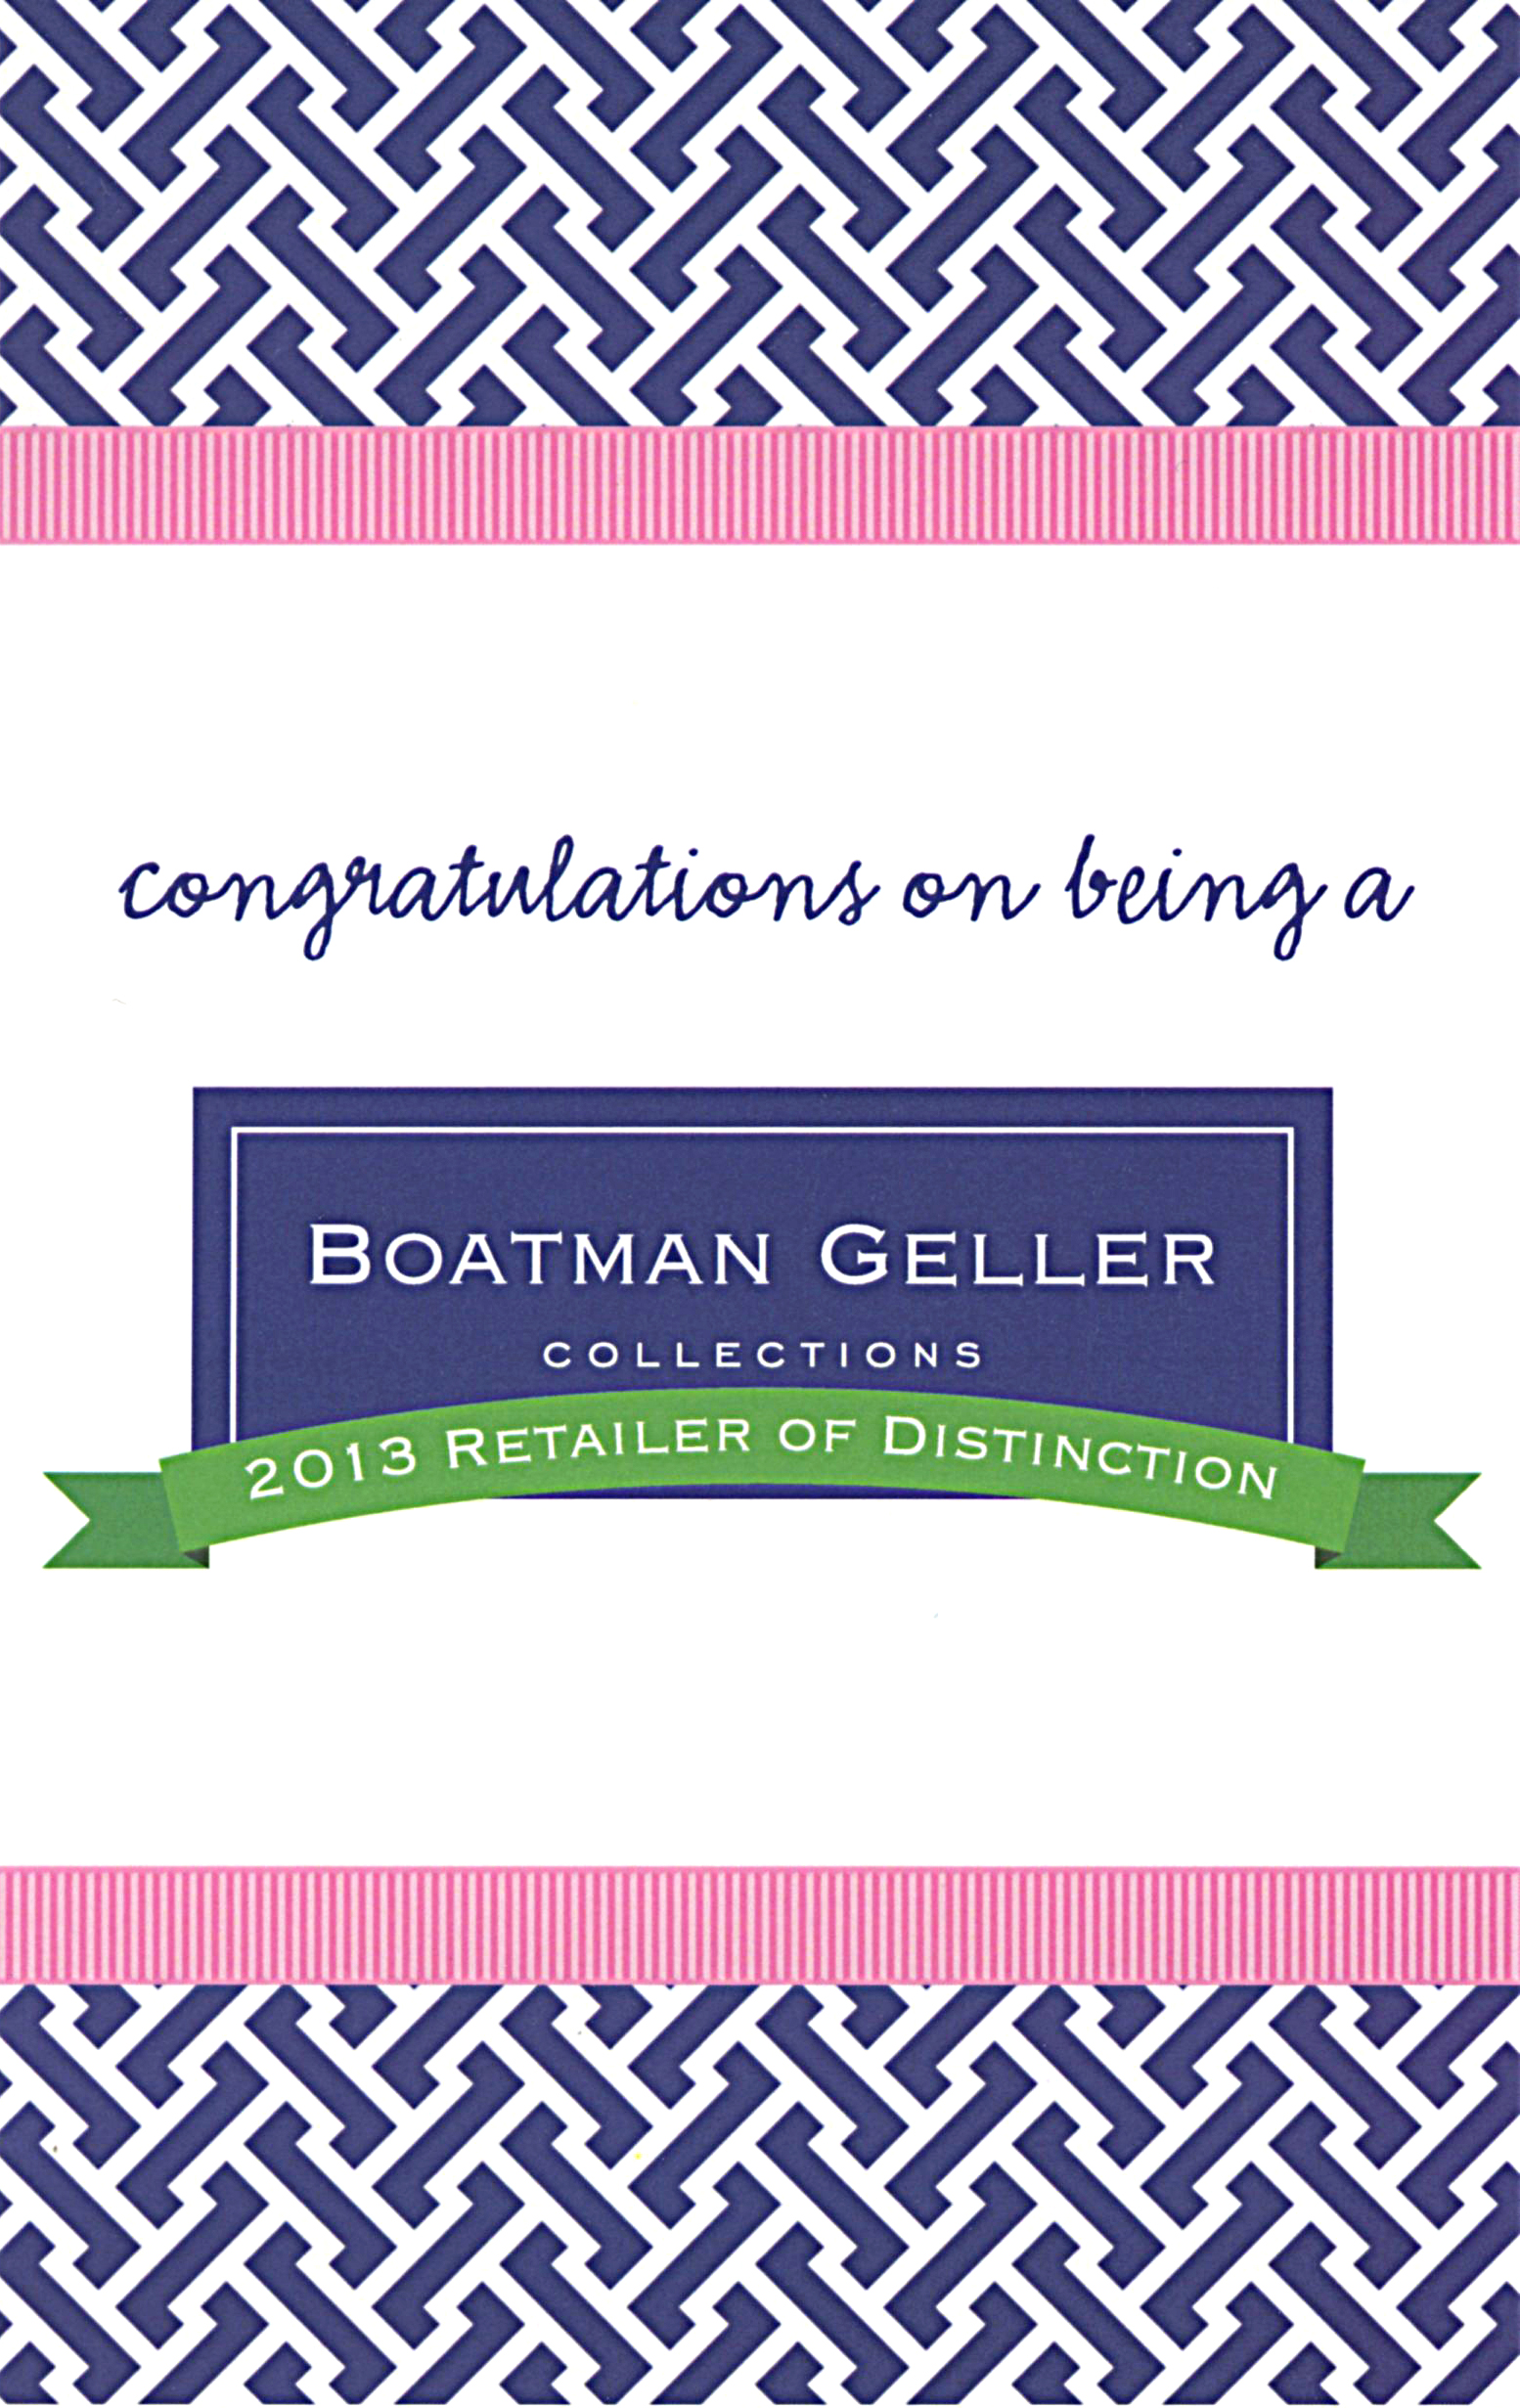 Boatman-Geller-2013-Retailer-of-Distinction